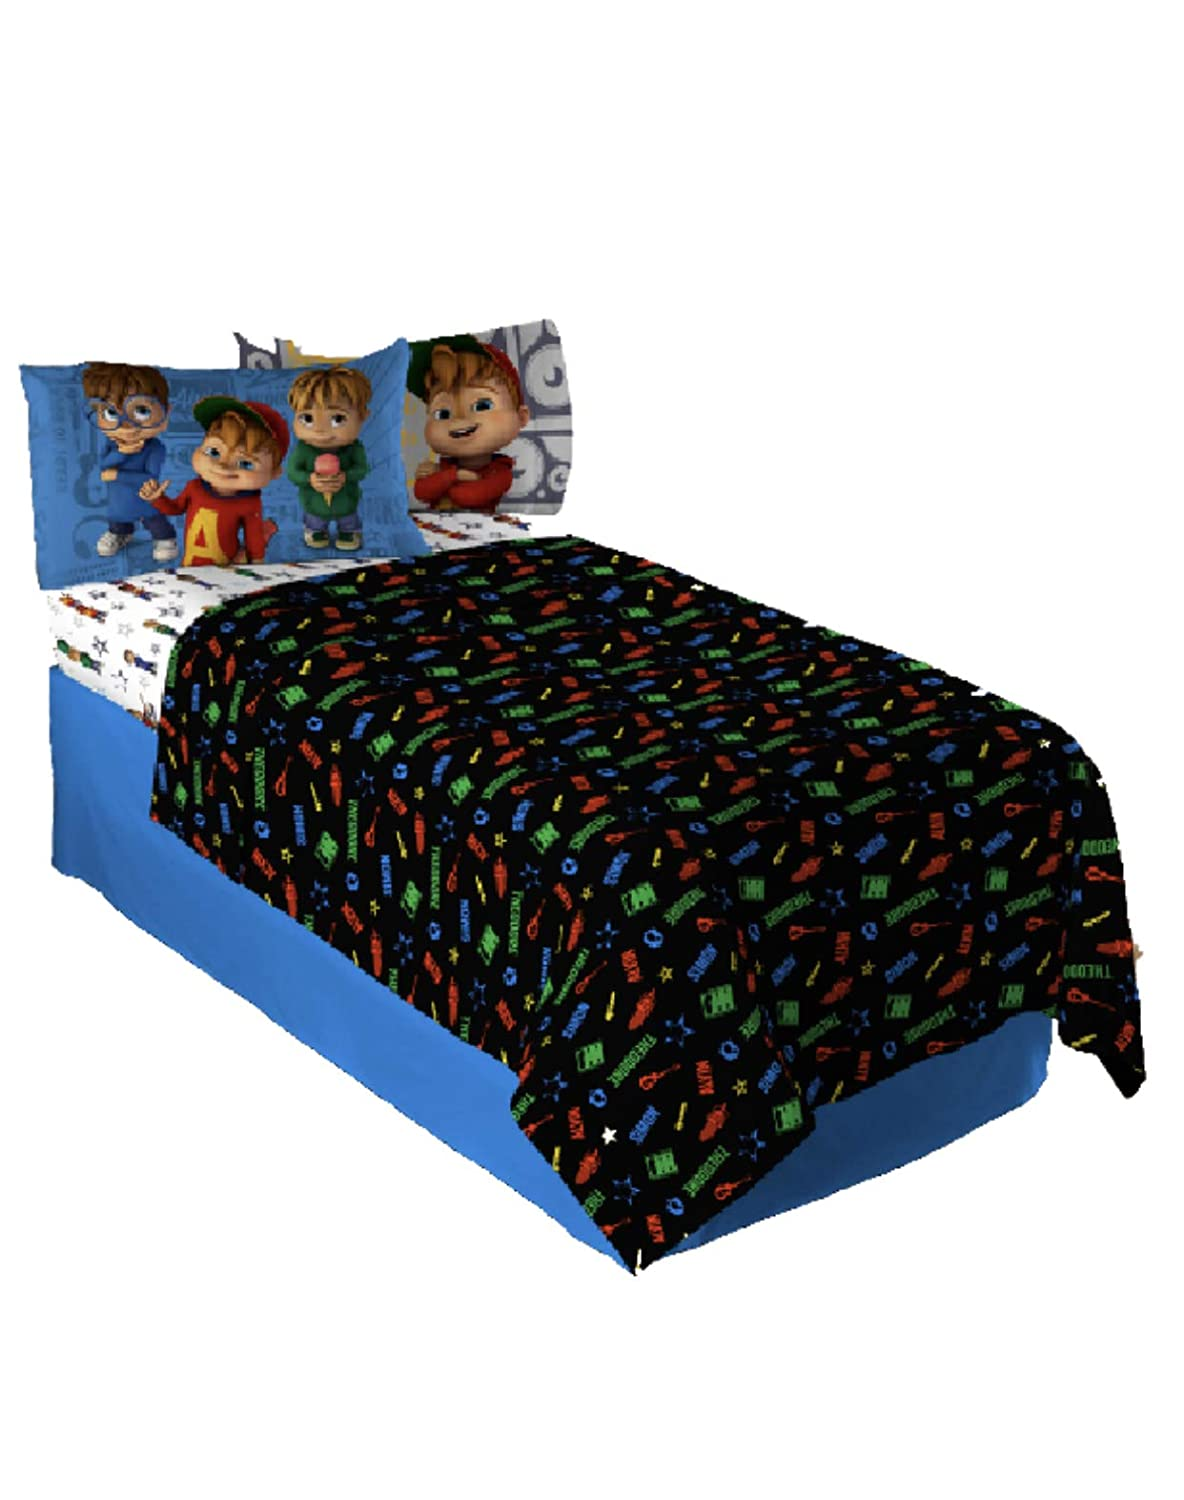 Inc Alvin and The Chipmunks 3 Piece Twin Sheet Set Franco Manufacturing Co MA799C0